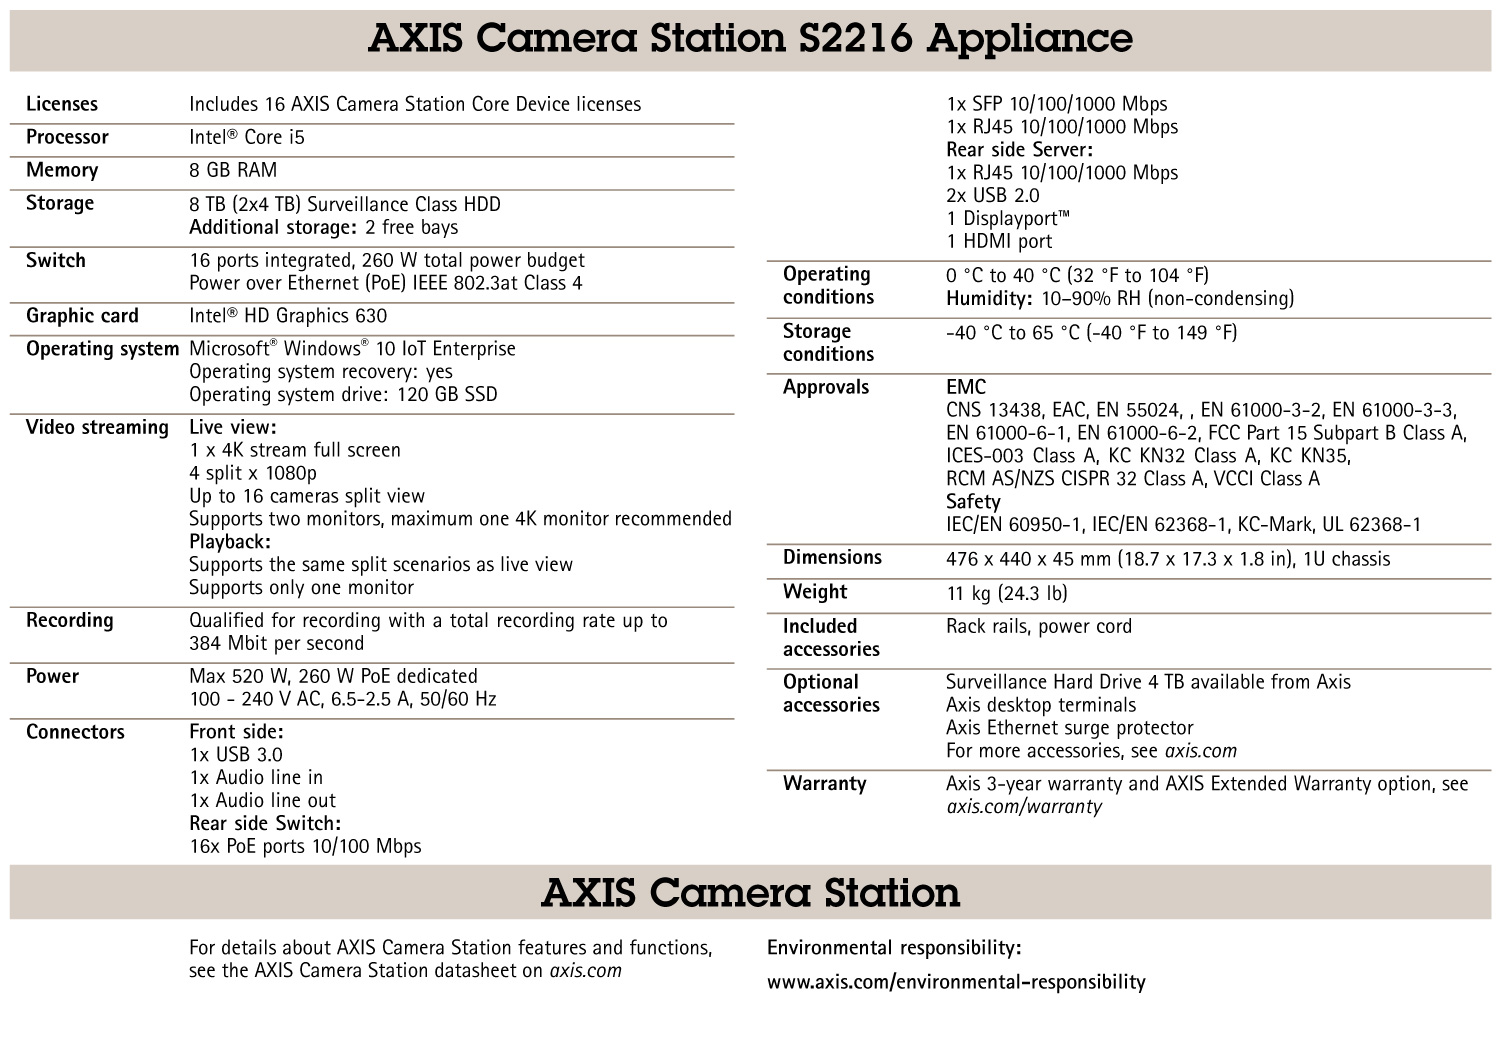 AXIS Camera Station S2216 Recorder